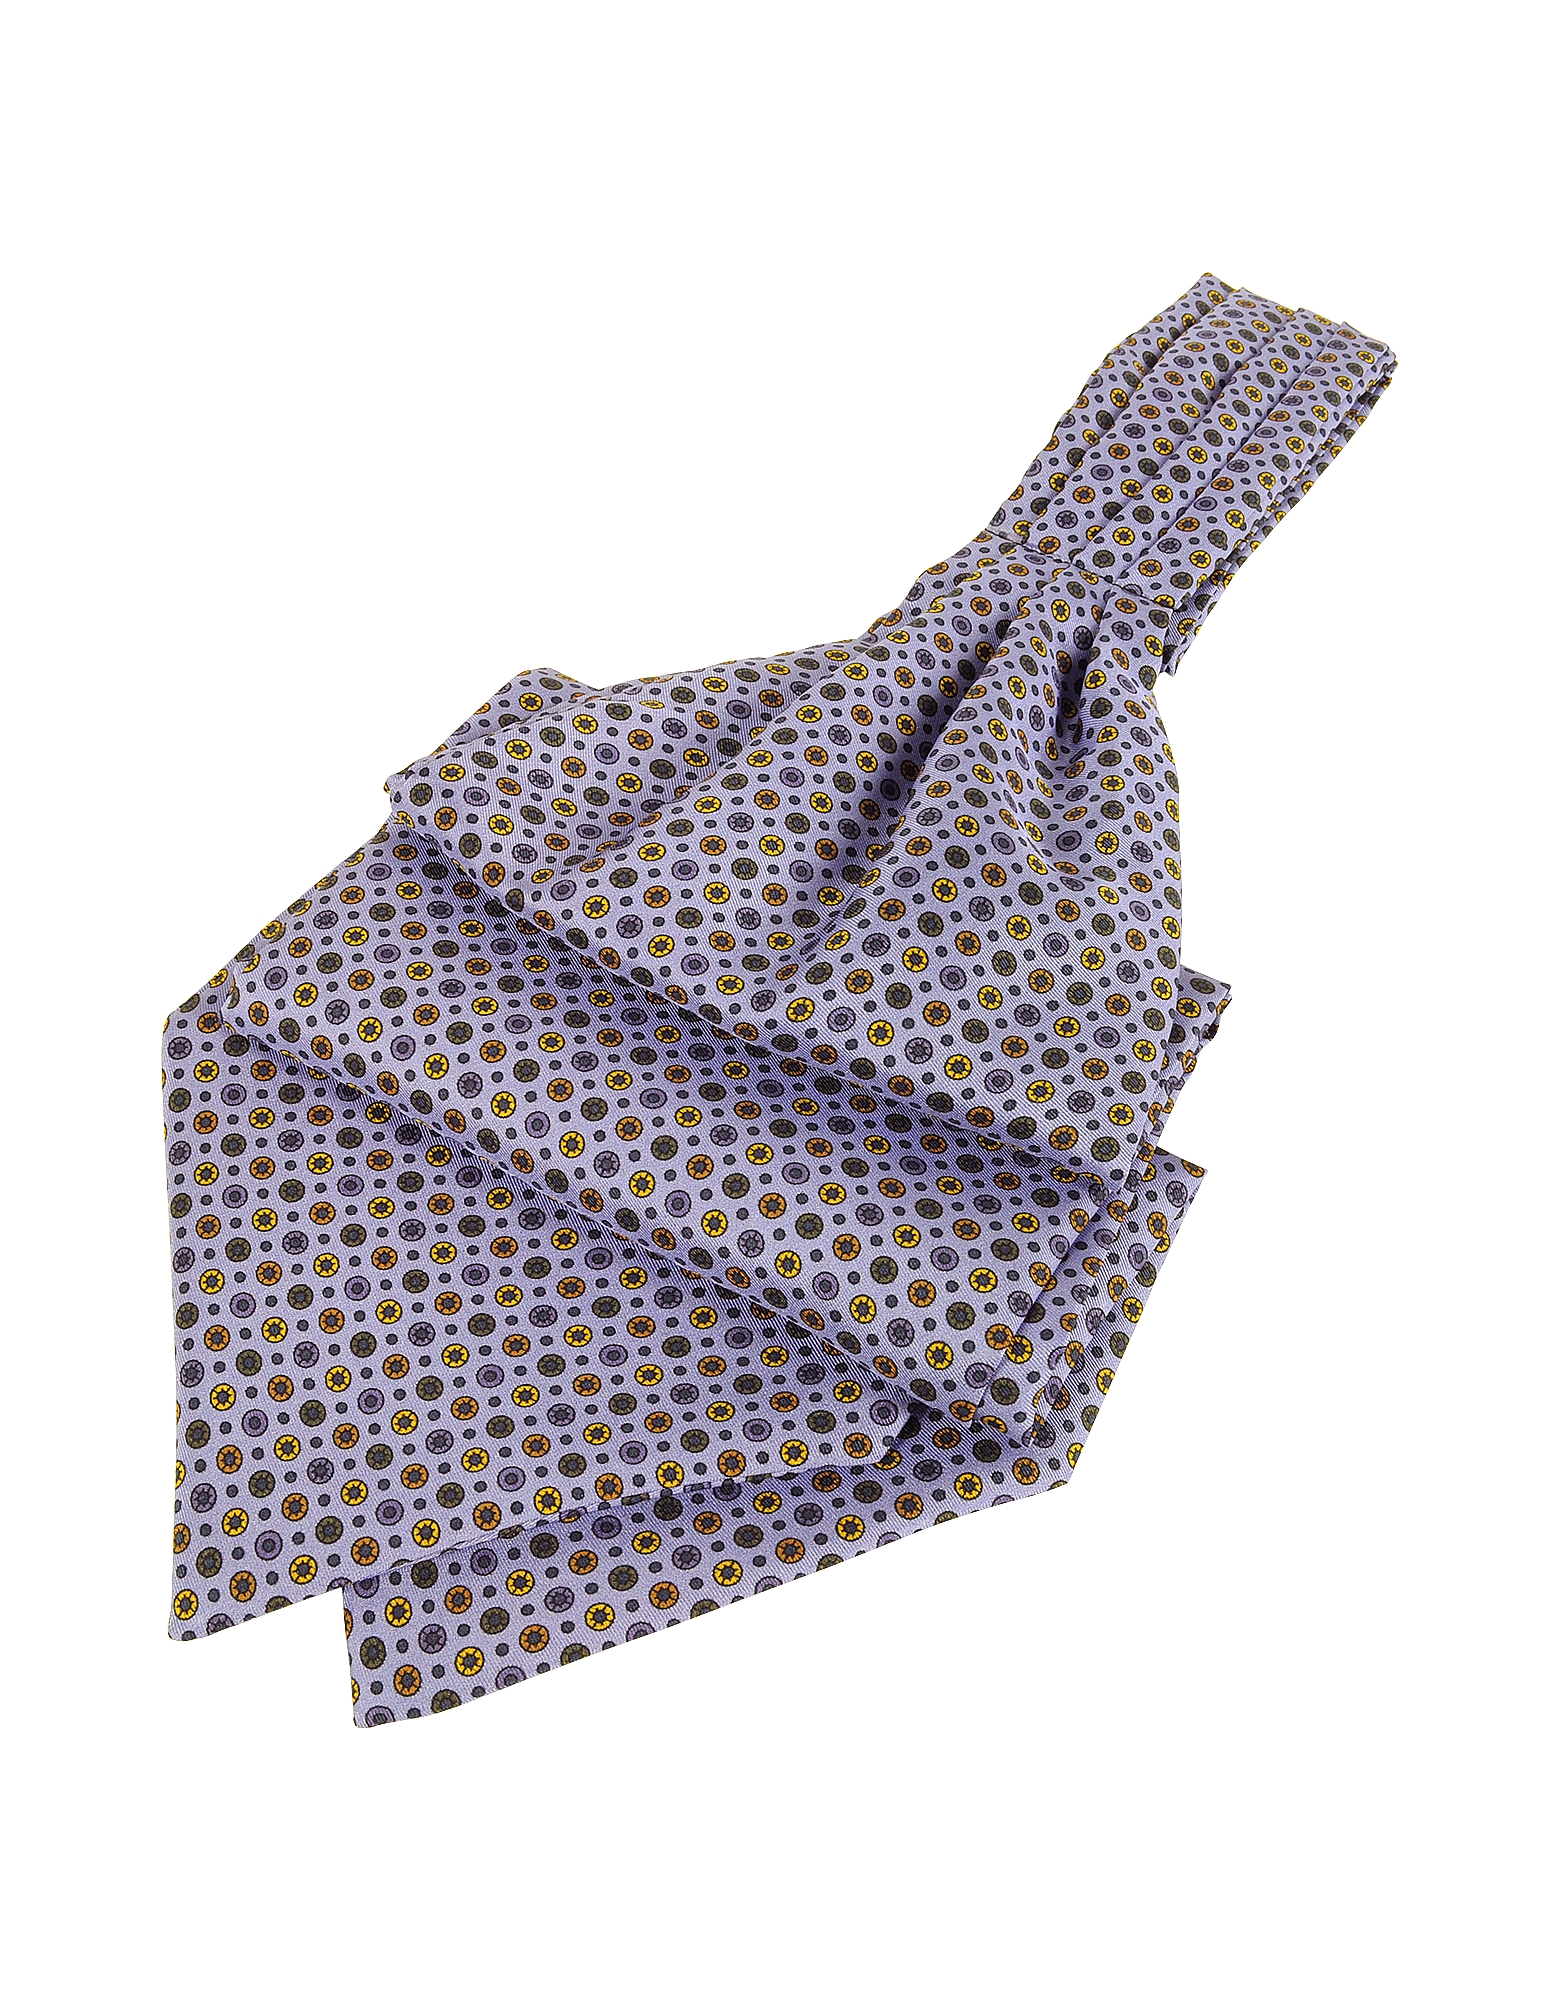 Image of Forzieri Designer Ascot ties, Dots and Flower Print Silk Ascot